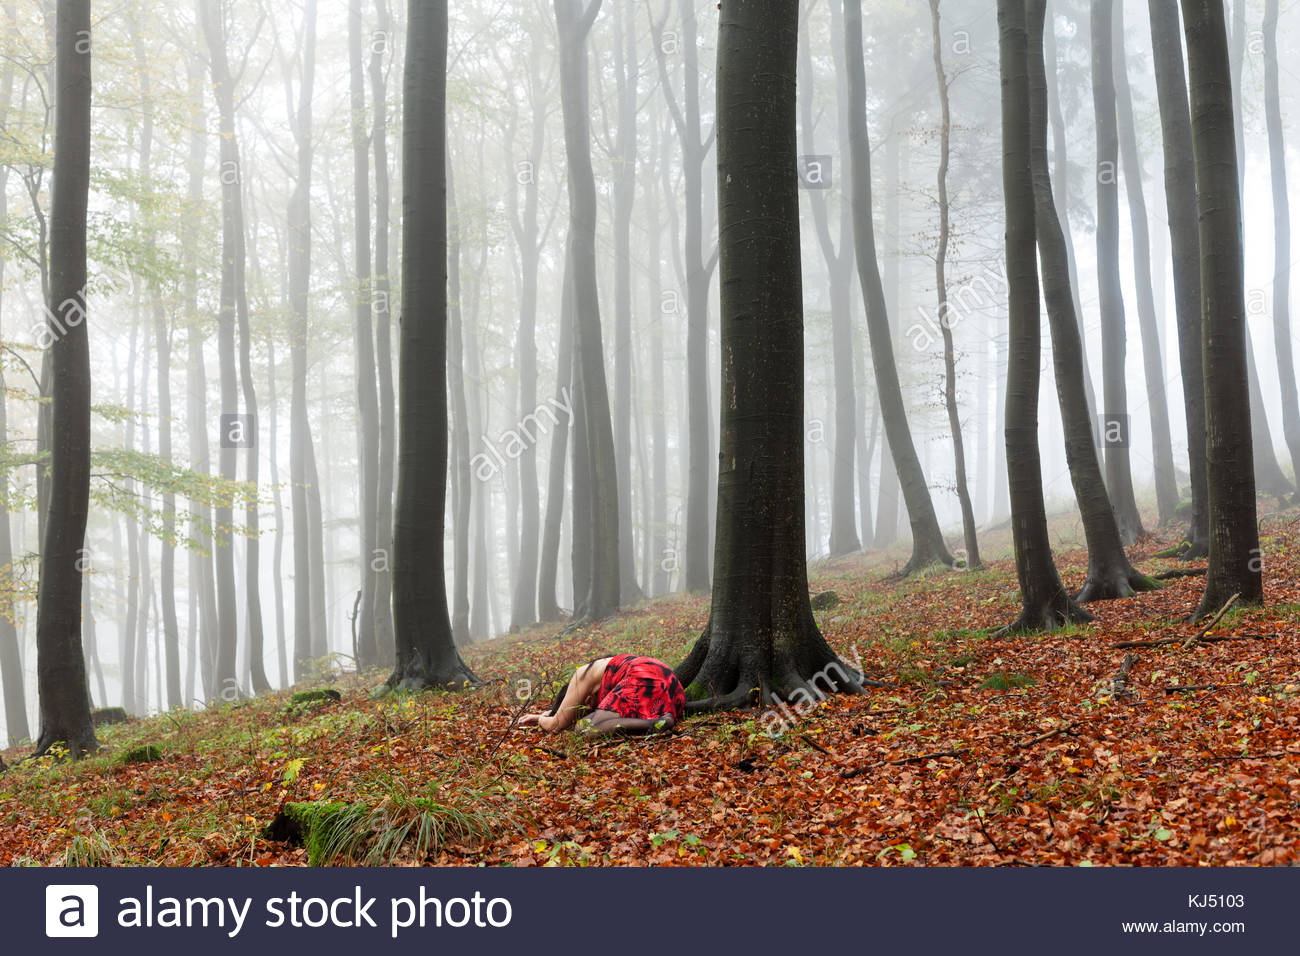 misty autumn forest with woman lying as if dead - Stock Image